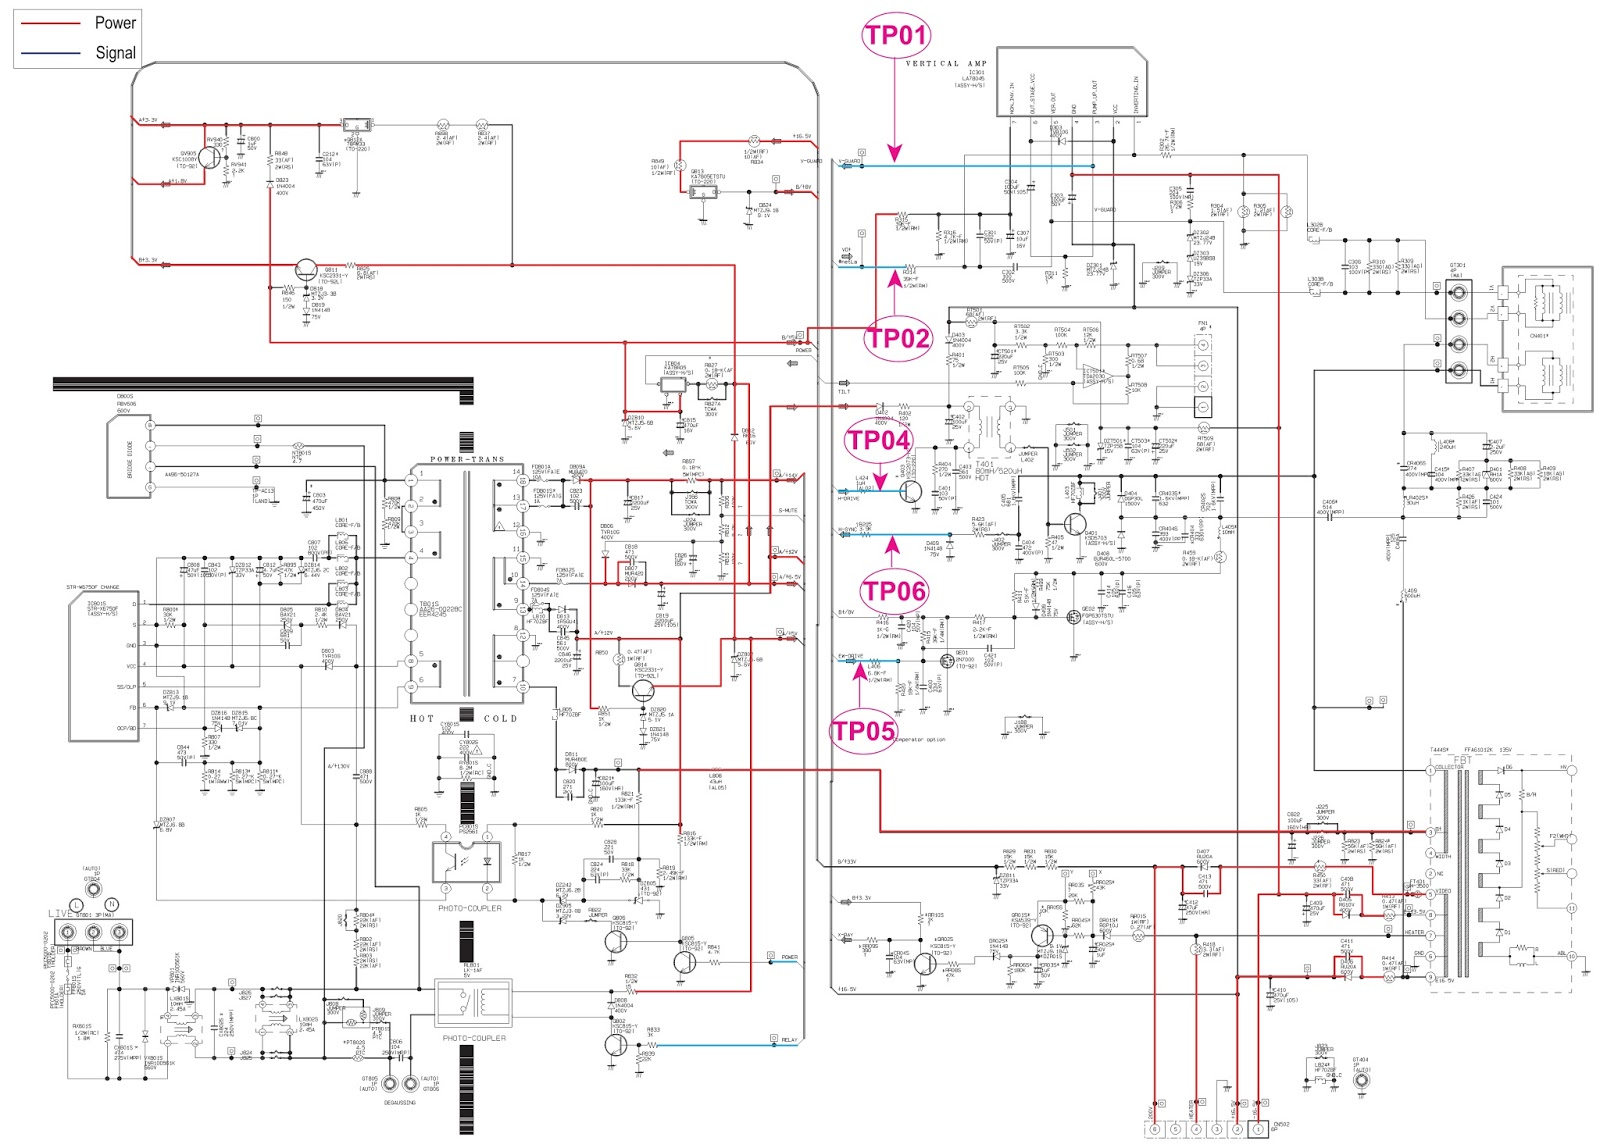 medium resolution of samsung cl29x50 power supply smps schematic circuit diagram str x6750f smps power supply schematic circuit diagram